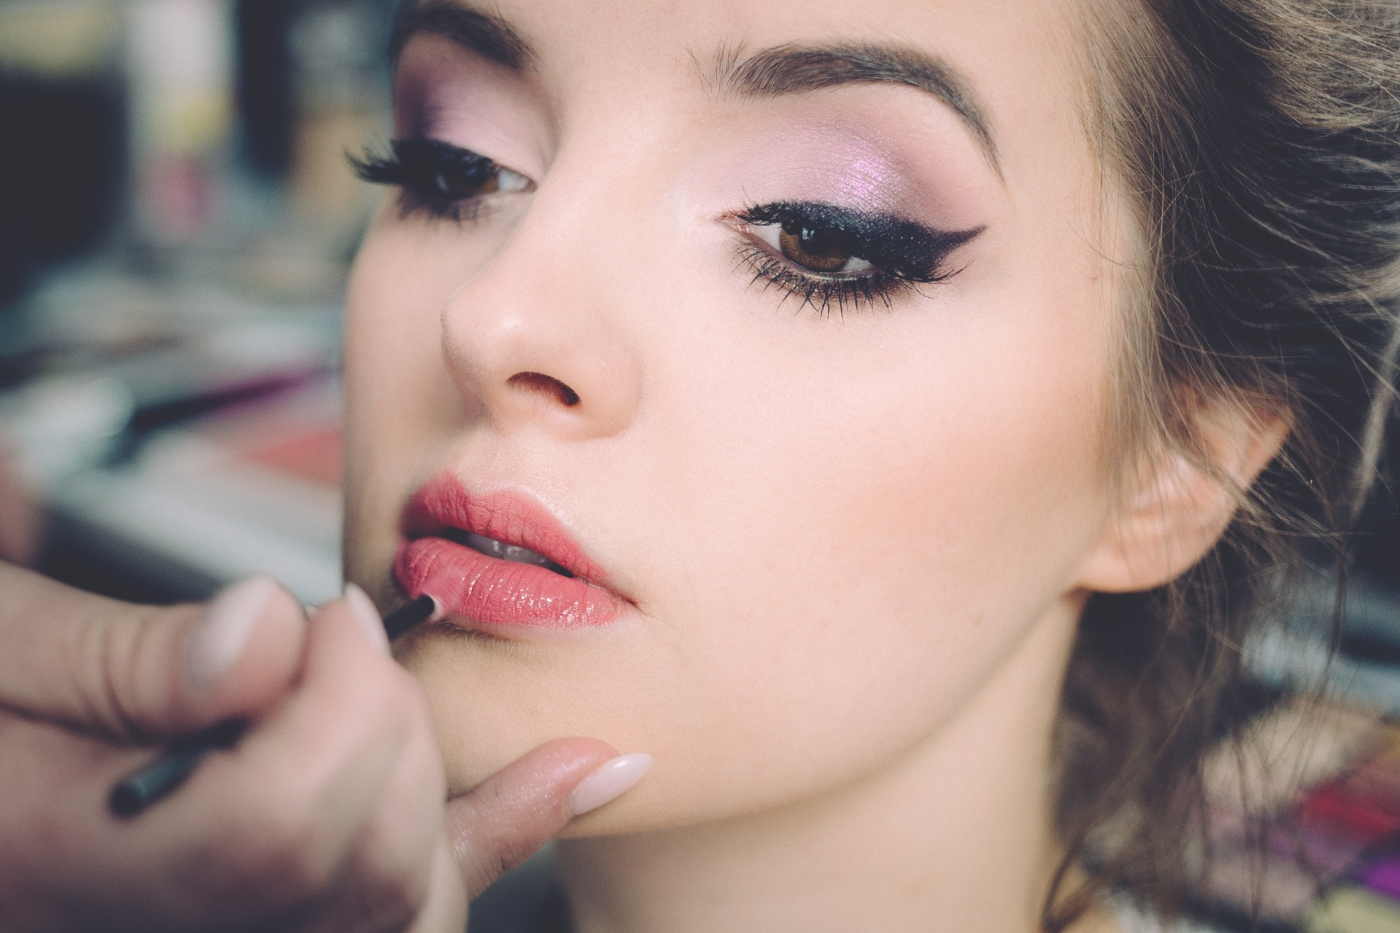 Next-level DIY makeup hacks that will surely make you think- Thank god I read it!